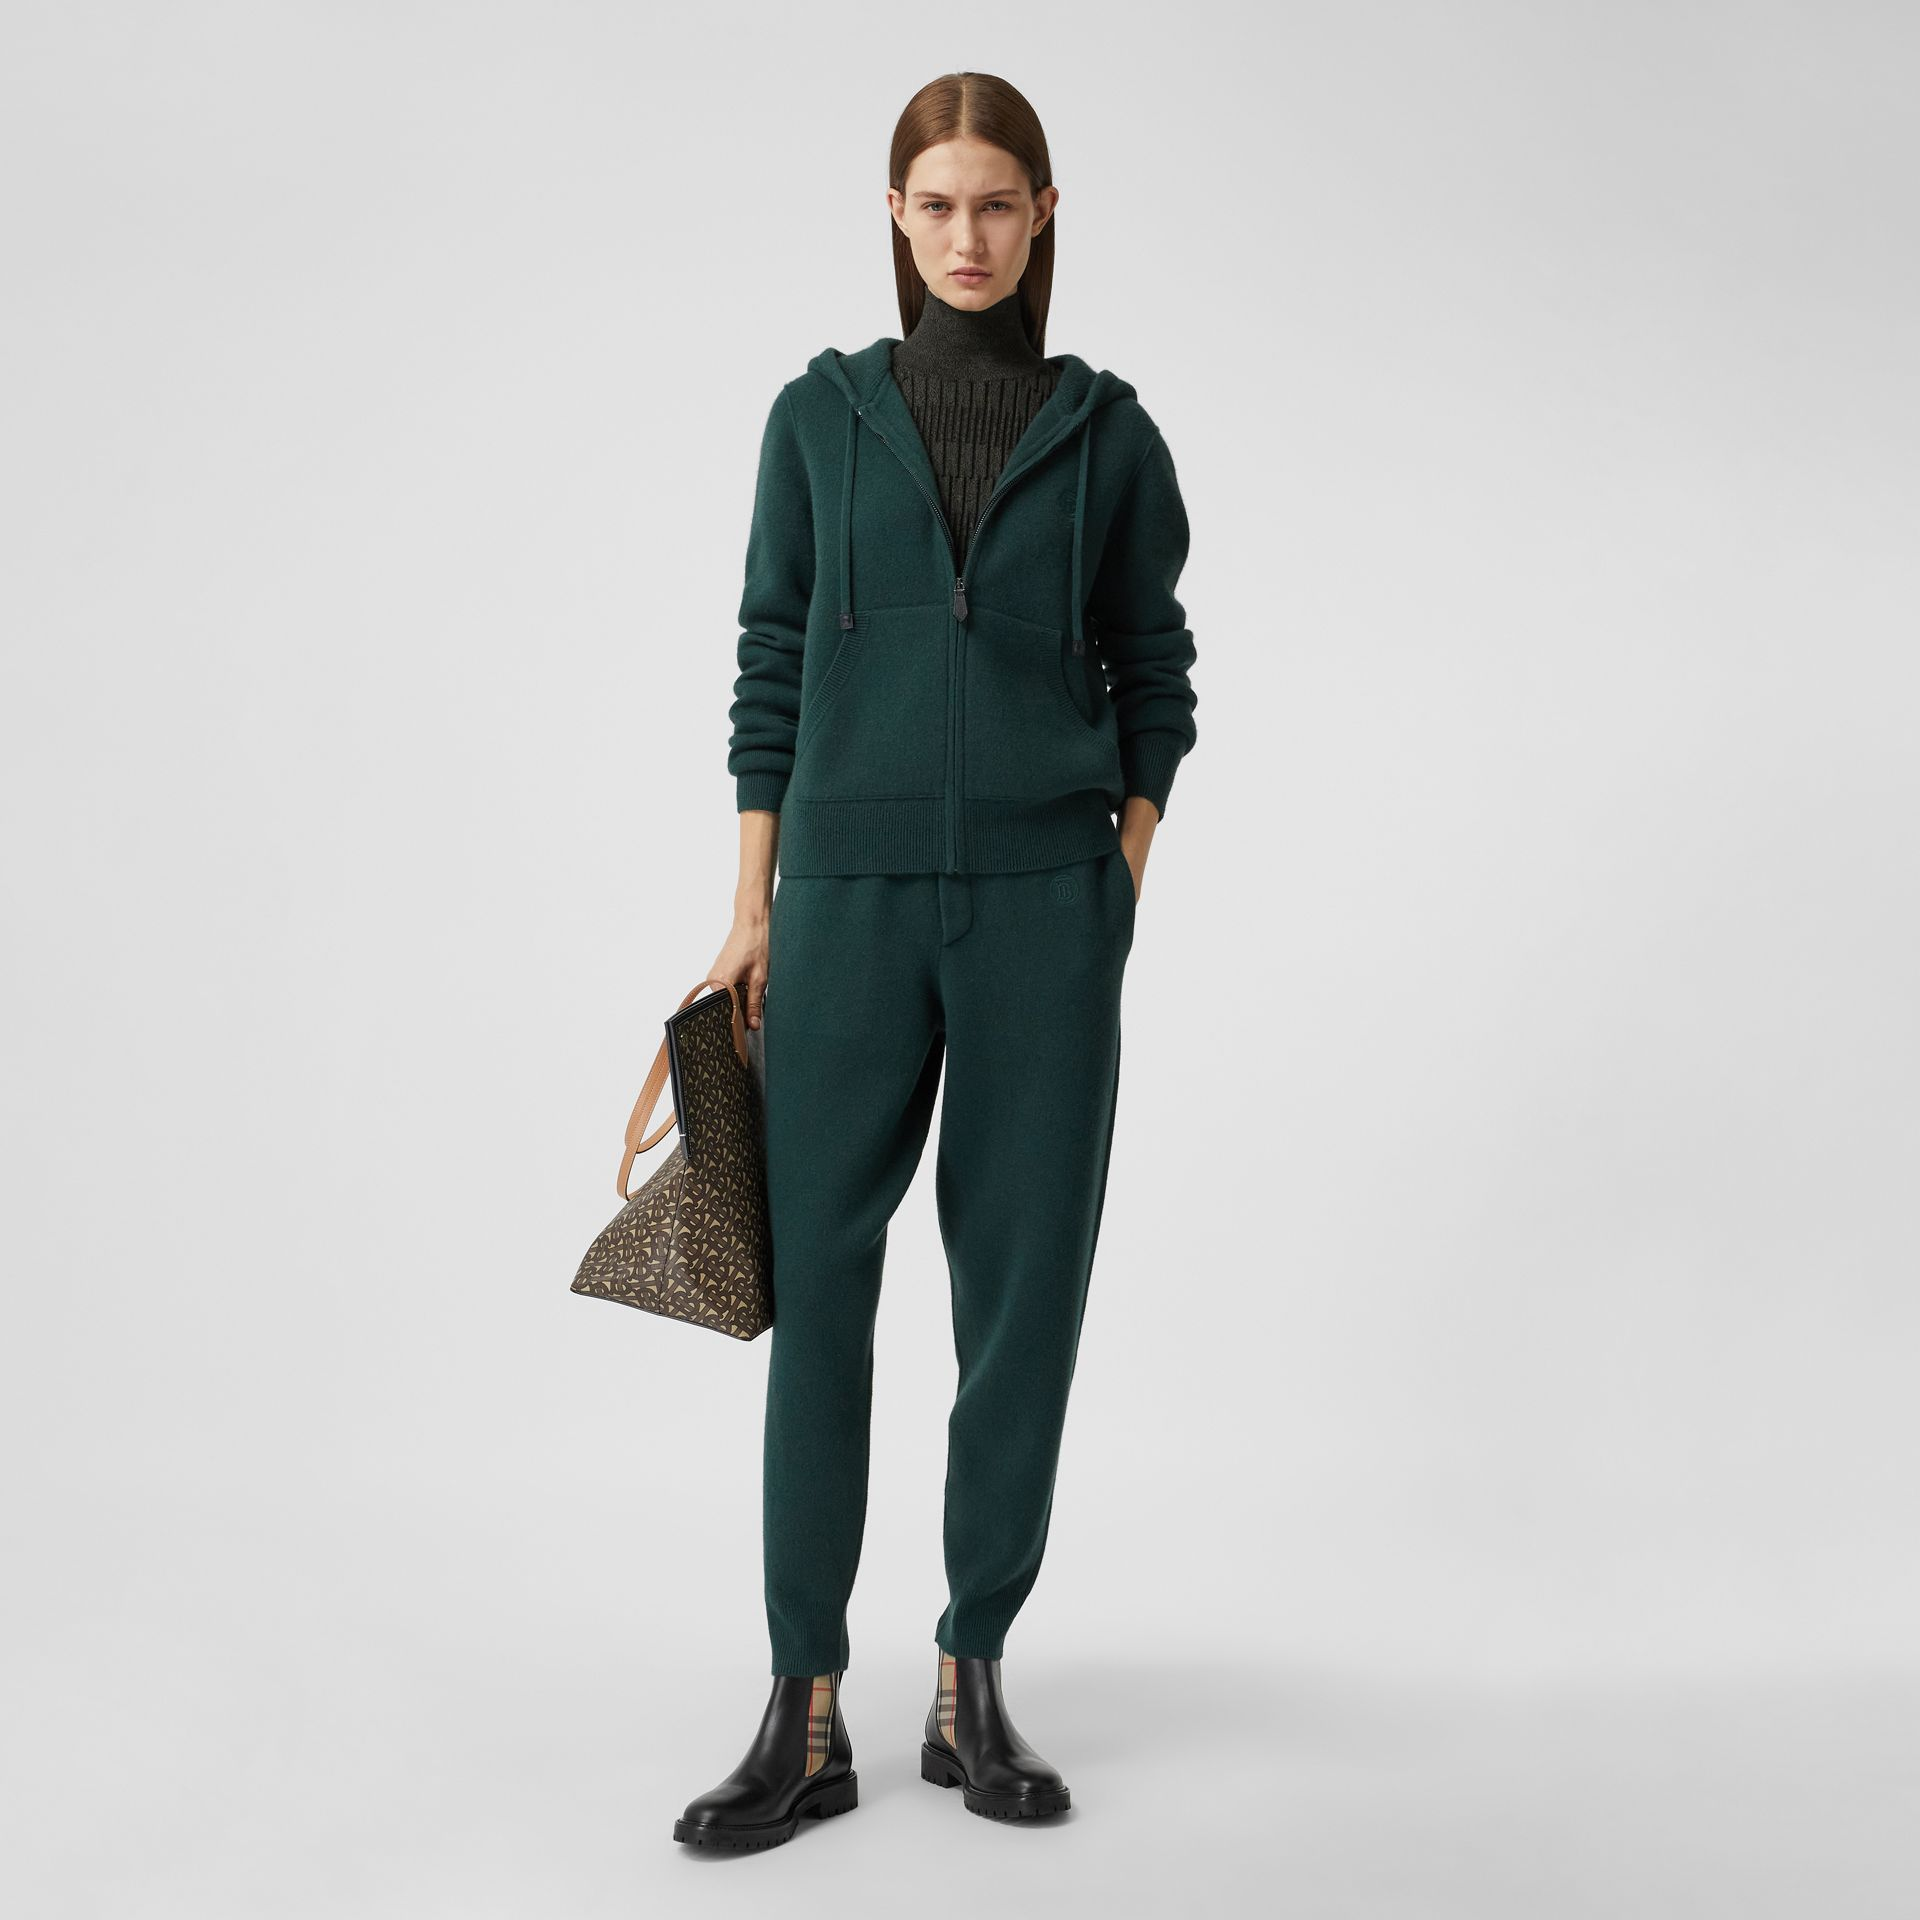 Monogram Motif Cashmere Blend Hooded Top in Bottle Green - Women | Burberry - gallery image 0